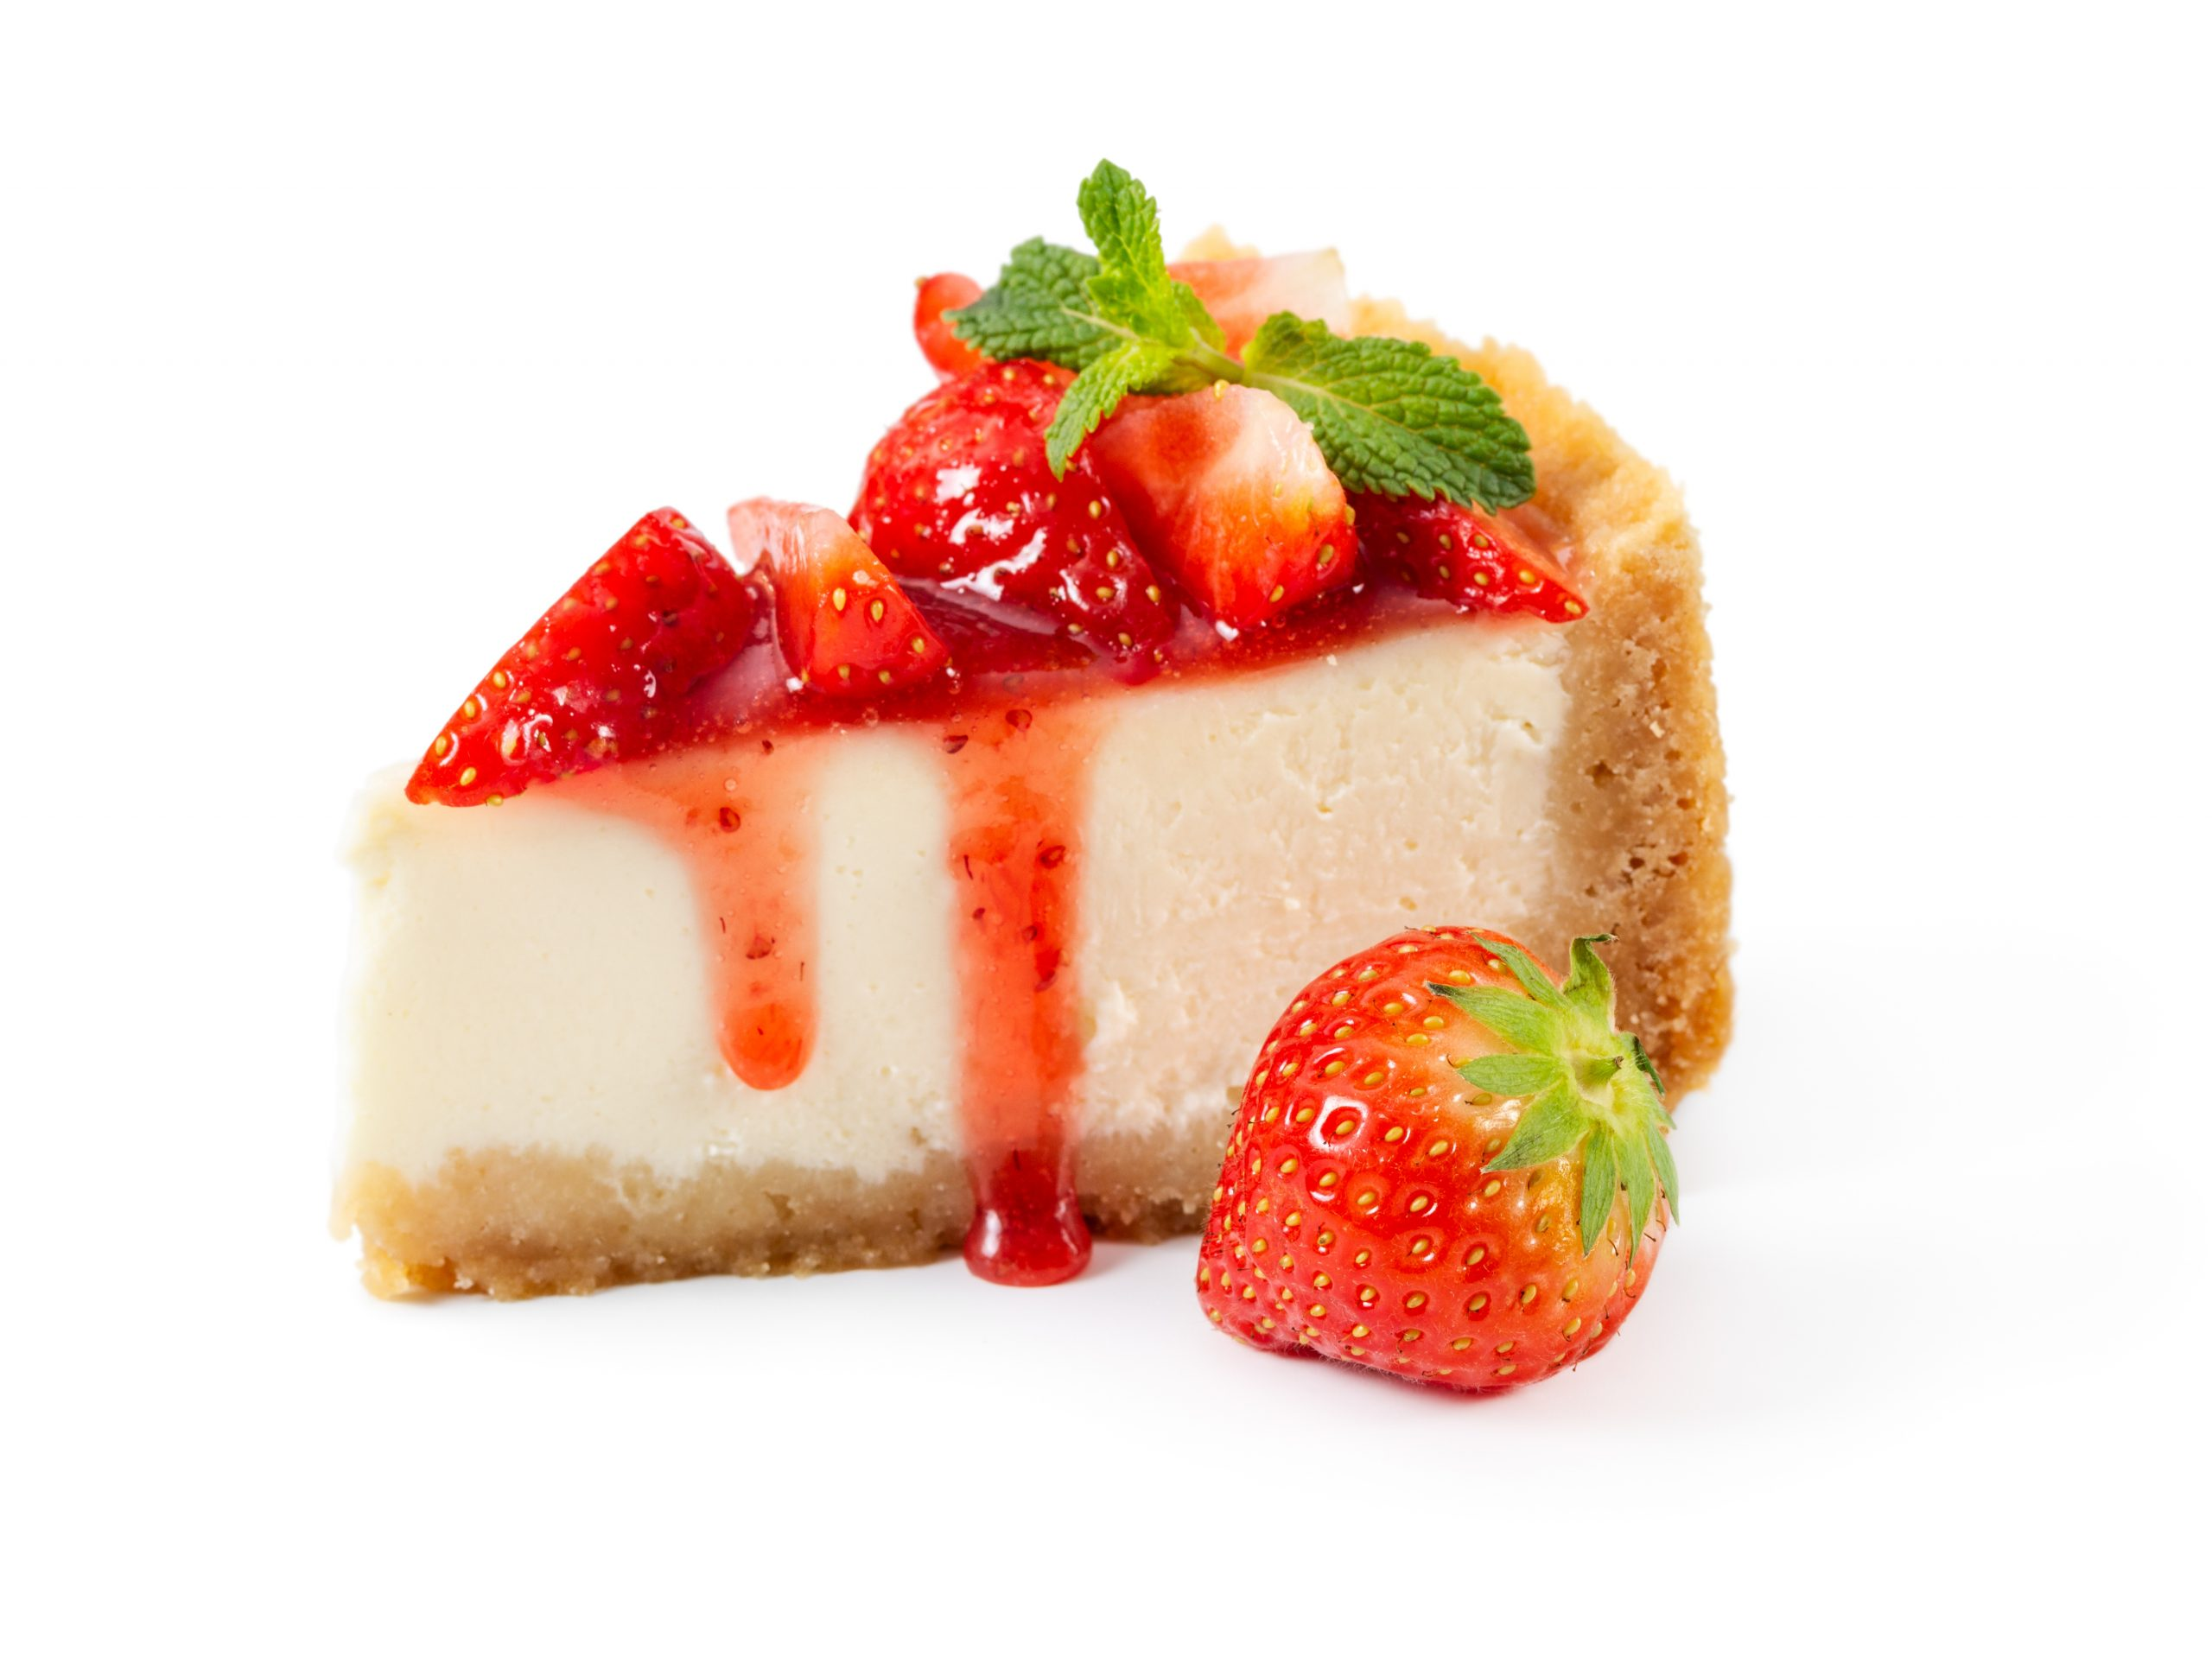 Piece of cheesecake with fresh strawberries and mint isolated on white background